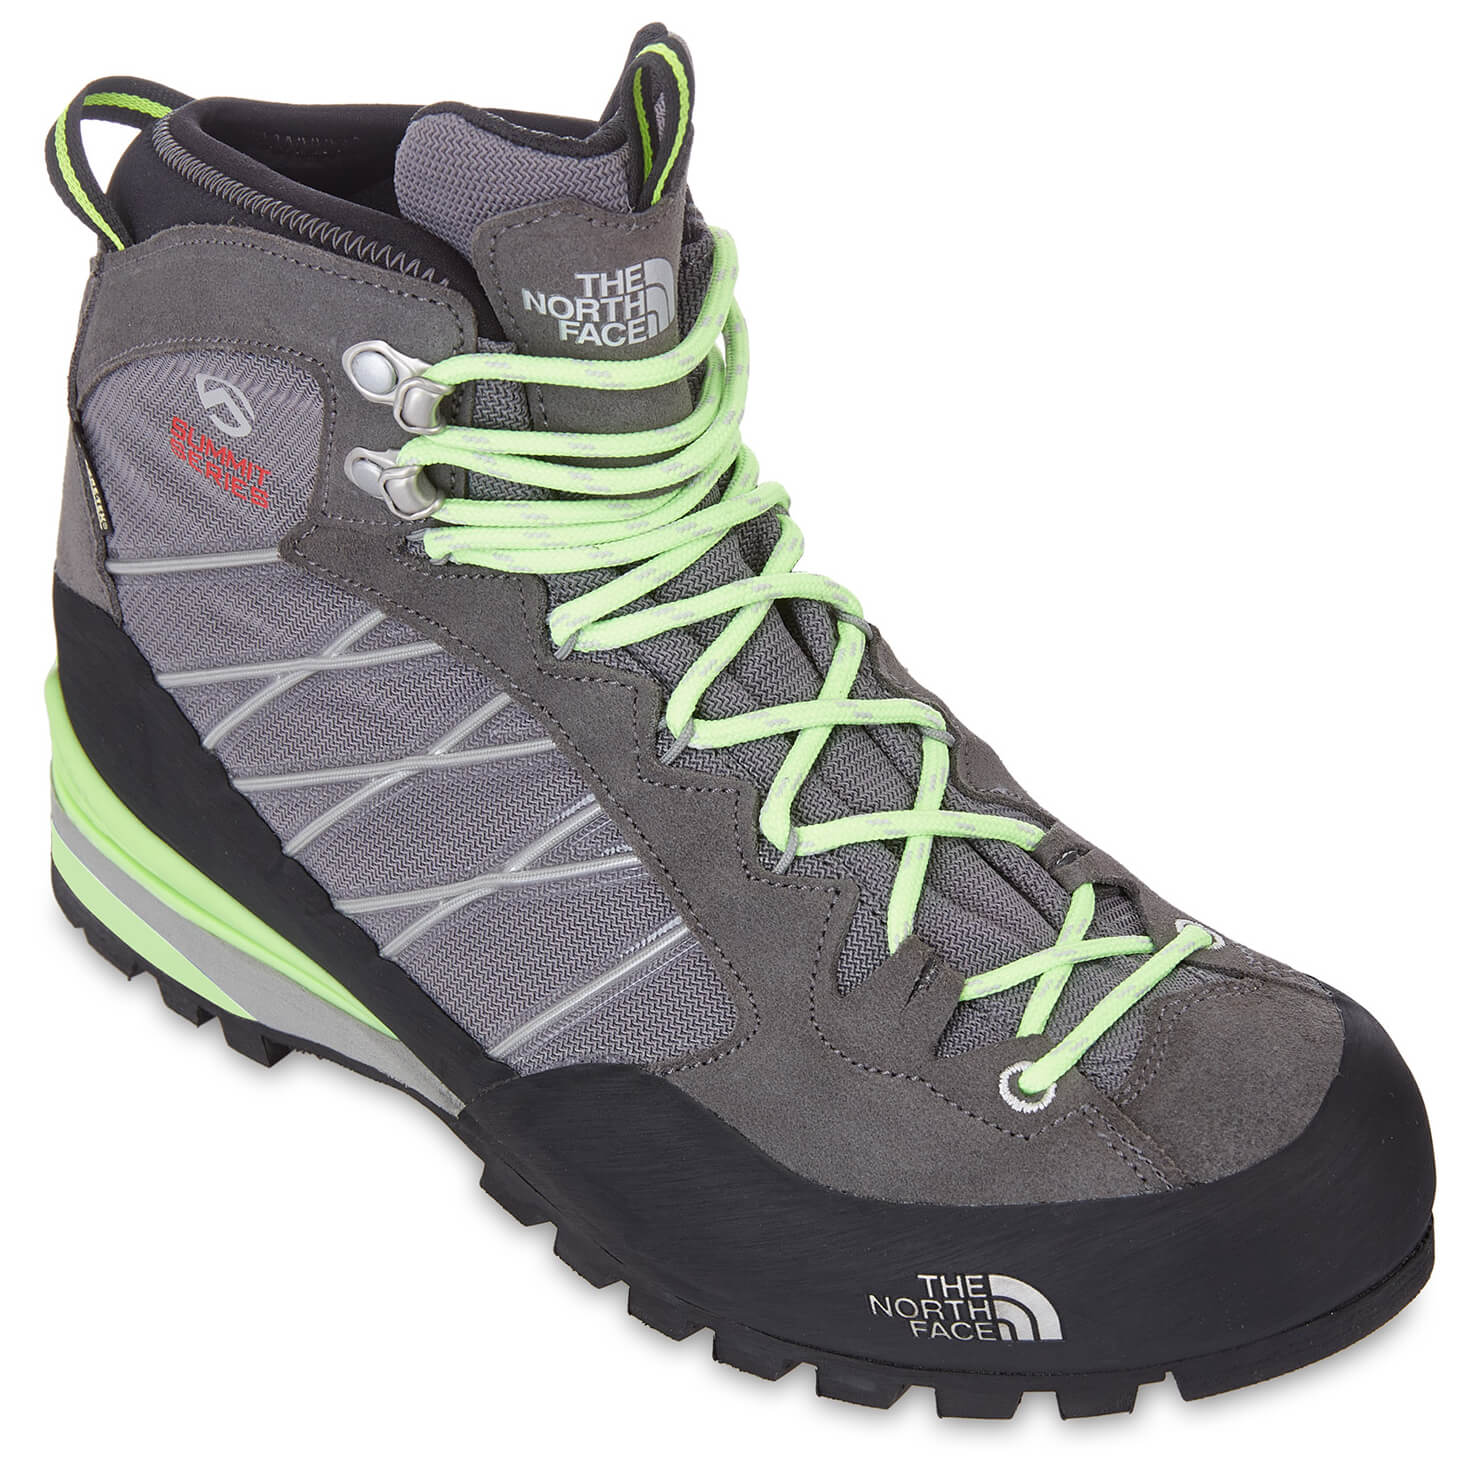 The North Face Chaussures d'alpinisme Verto S3K GTX Homme tnf black/tnf yellow MAFtU